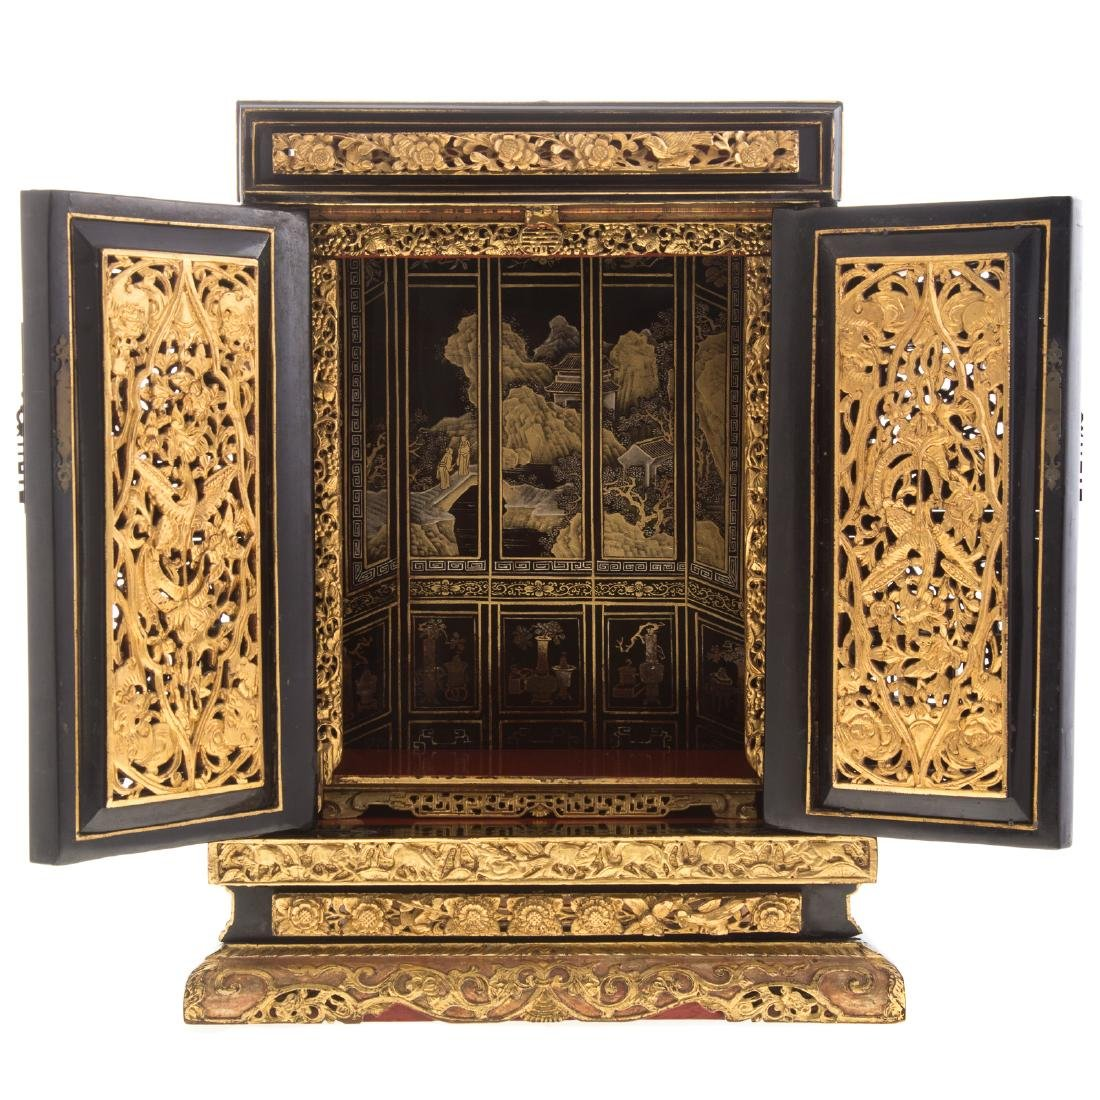 Chinese lacquer and gilt wood shrine - 6